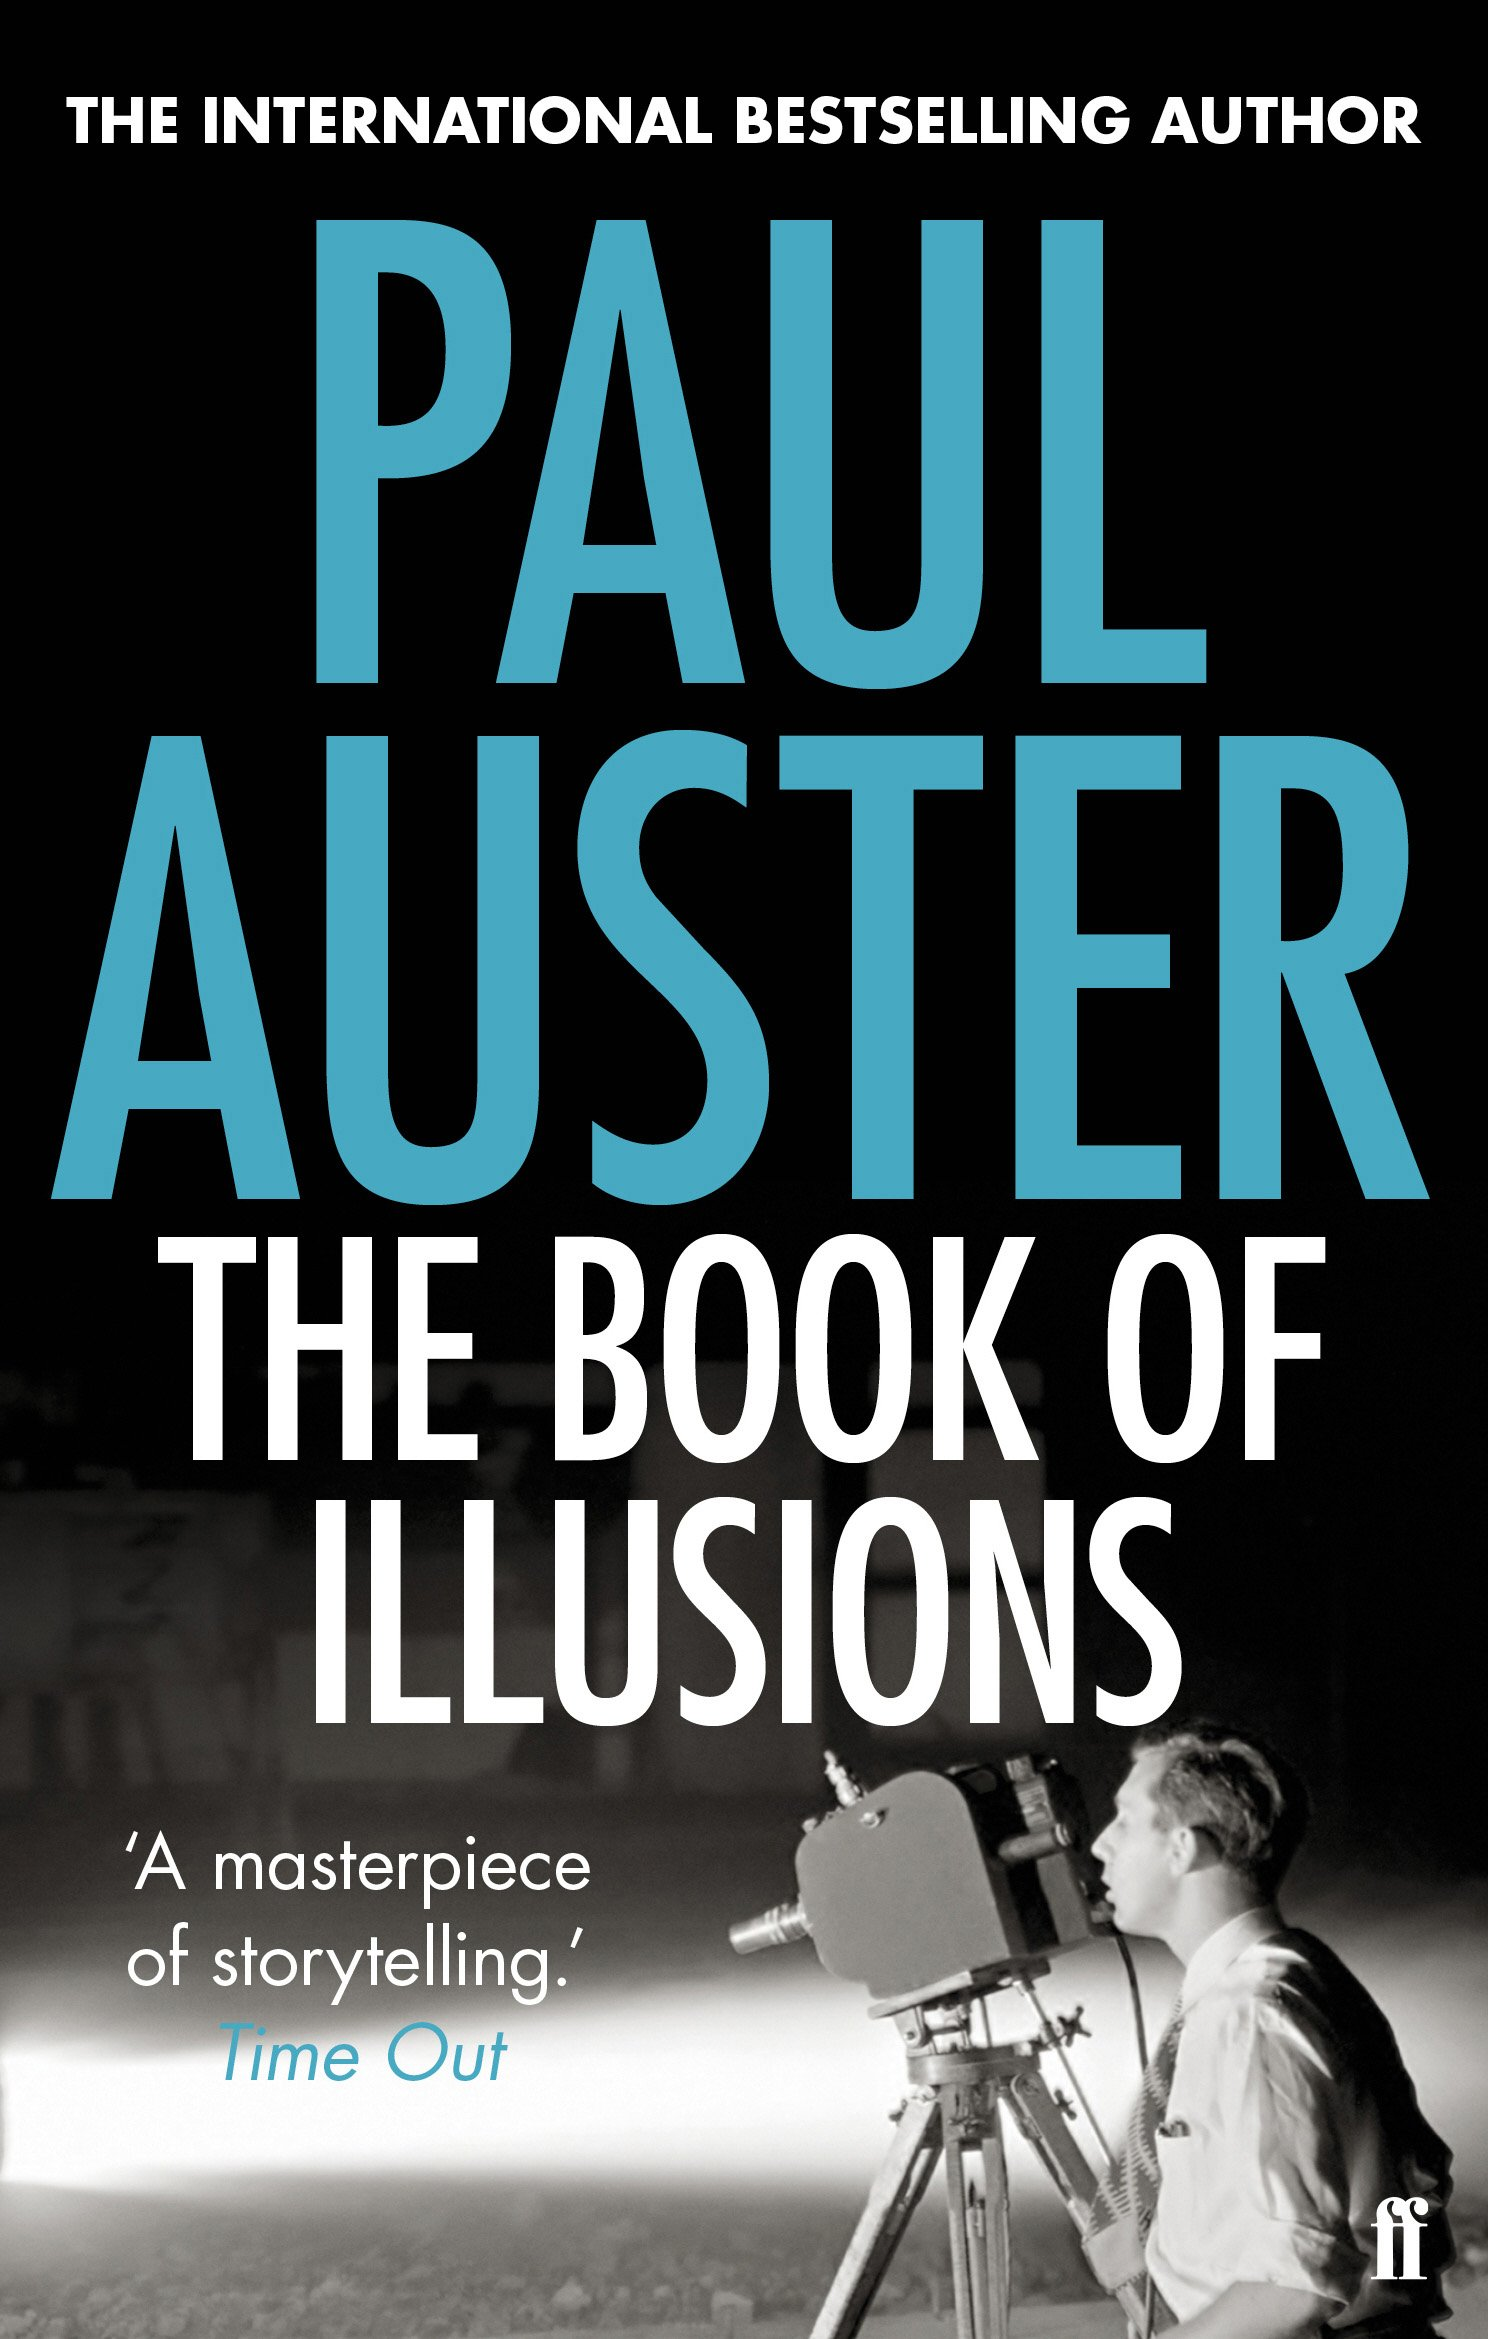 Download Book of Illusions ebook